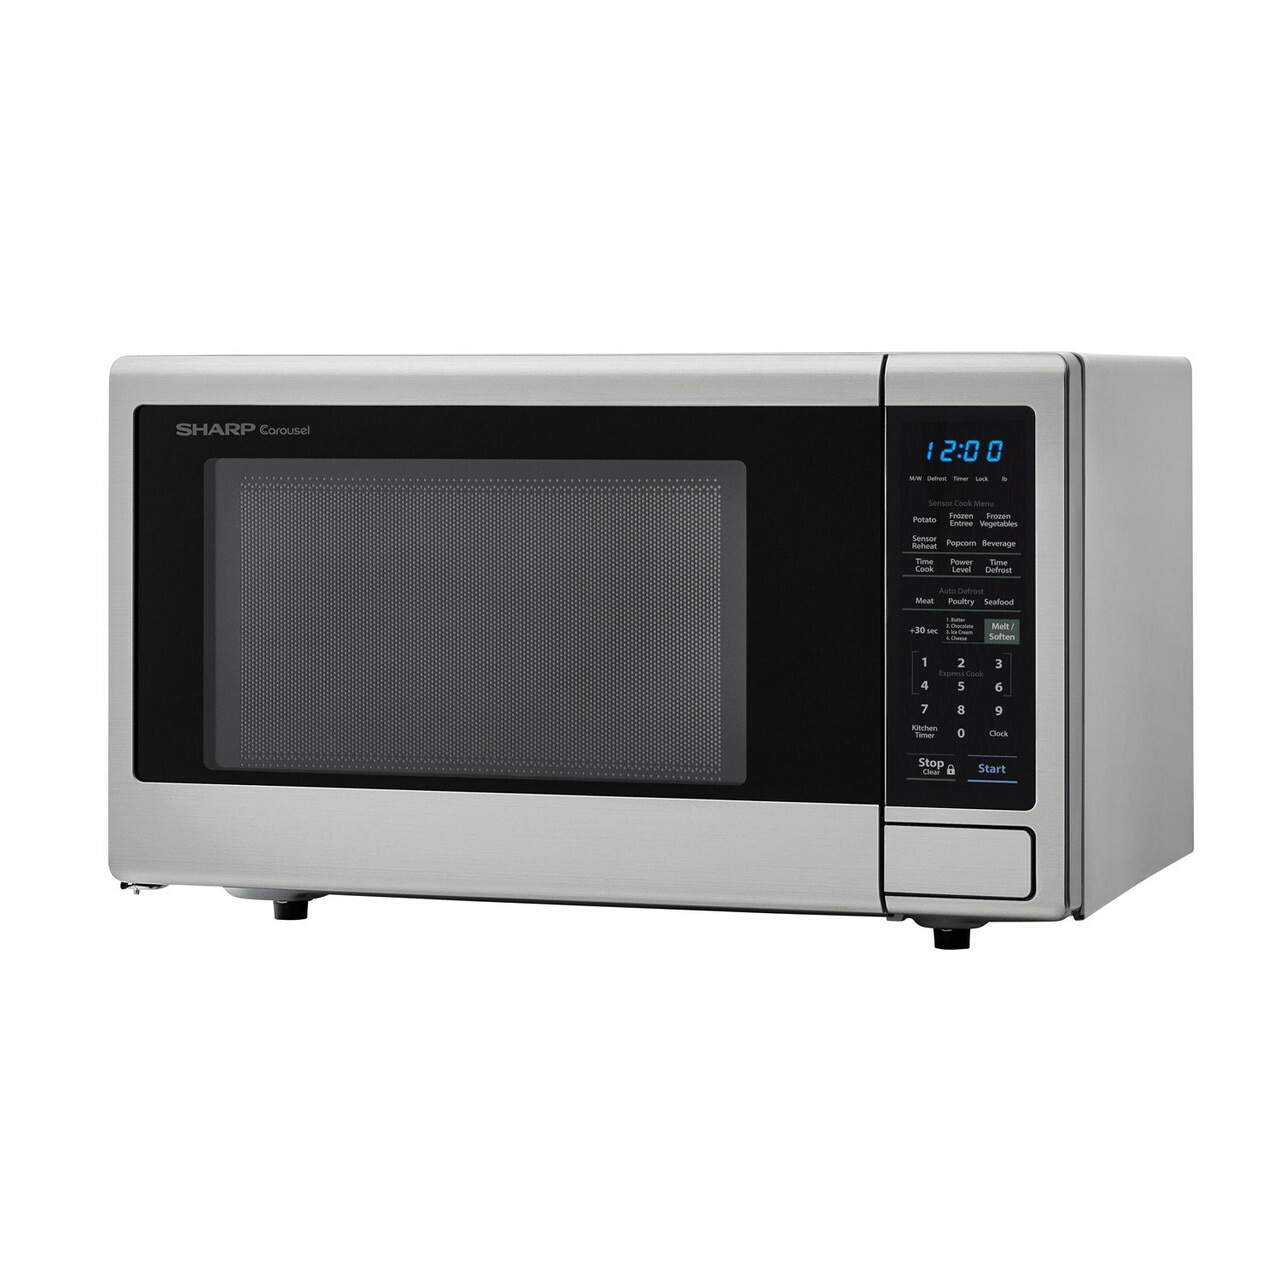 1.4 cu. ft. Sharp Stainless Steel Countertop Microwave (SMC1442CS) – left angle view